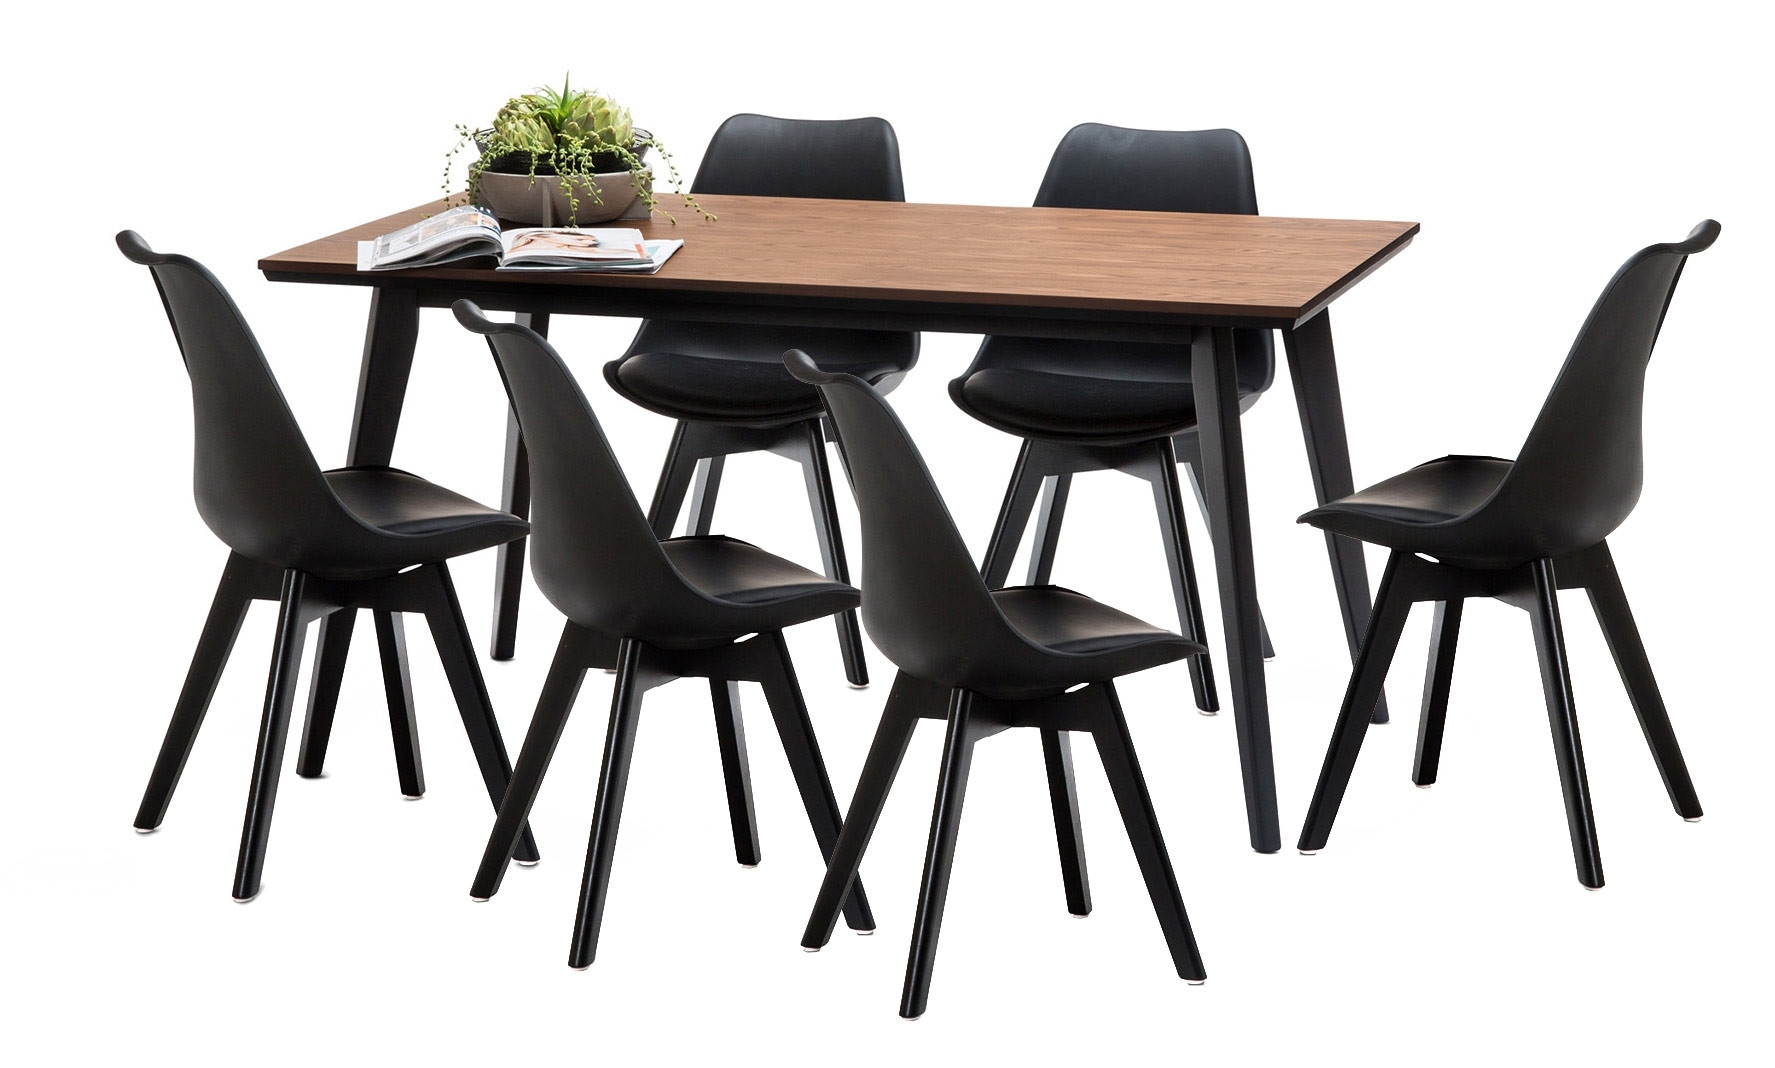 Wyatt Dining Table Set With 6 Padded Eames Replica Chairs | Temple Throughout Most Recently Released Wyatt Dining Tables (View 20 of 20)